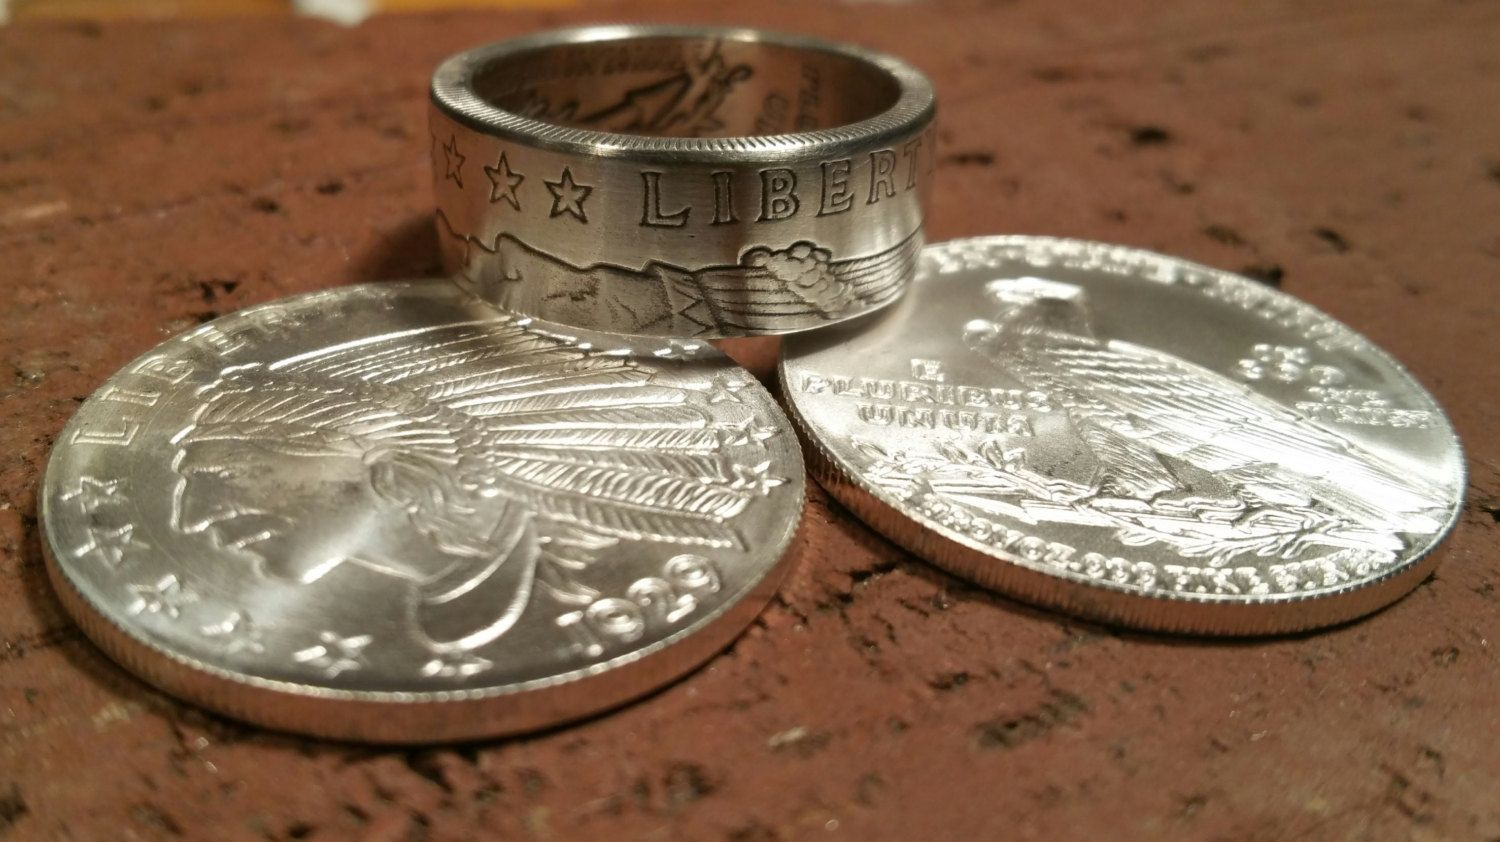 Incuse Indian Coin Ring Hand Forged 1 2 Oz Pure 999 Fine Silver Coin Ring Pure Products Coin Jewelry